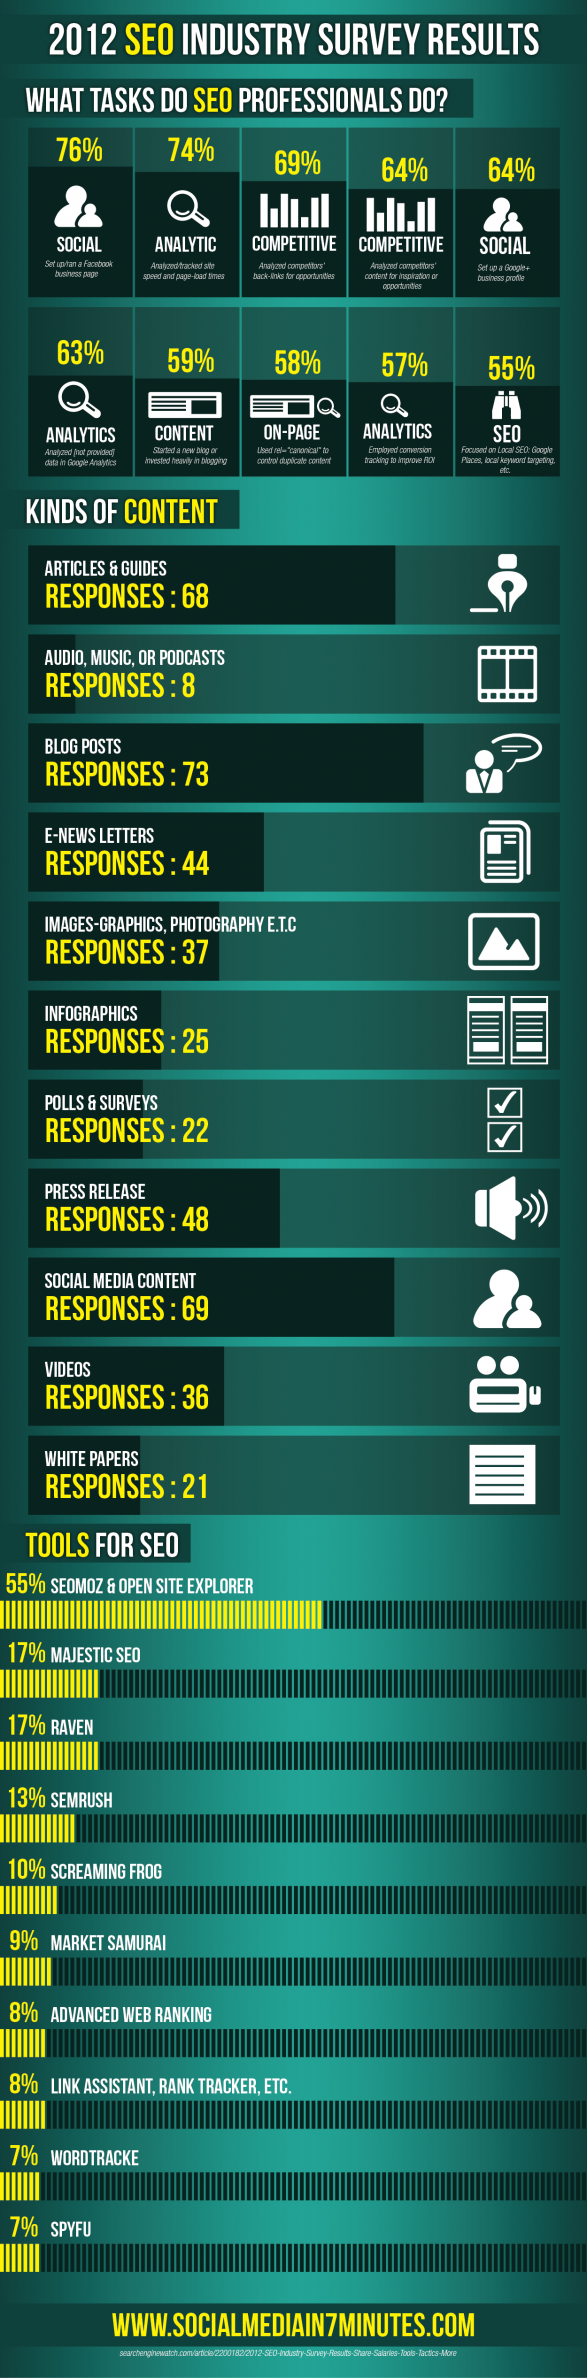 2012 SEO Industry Survey Results